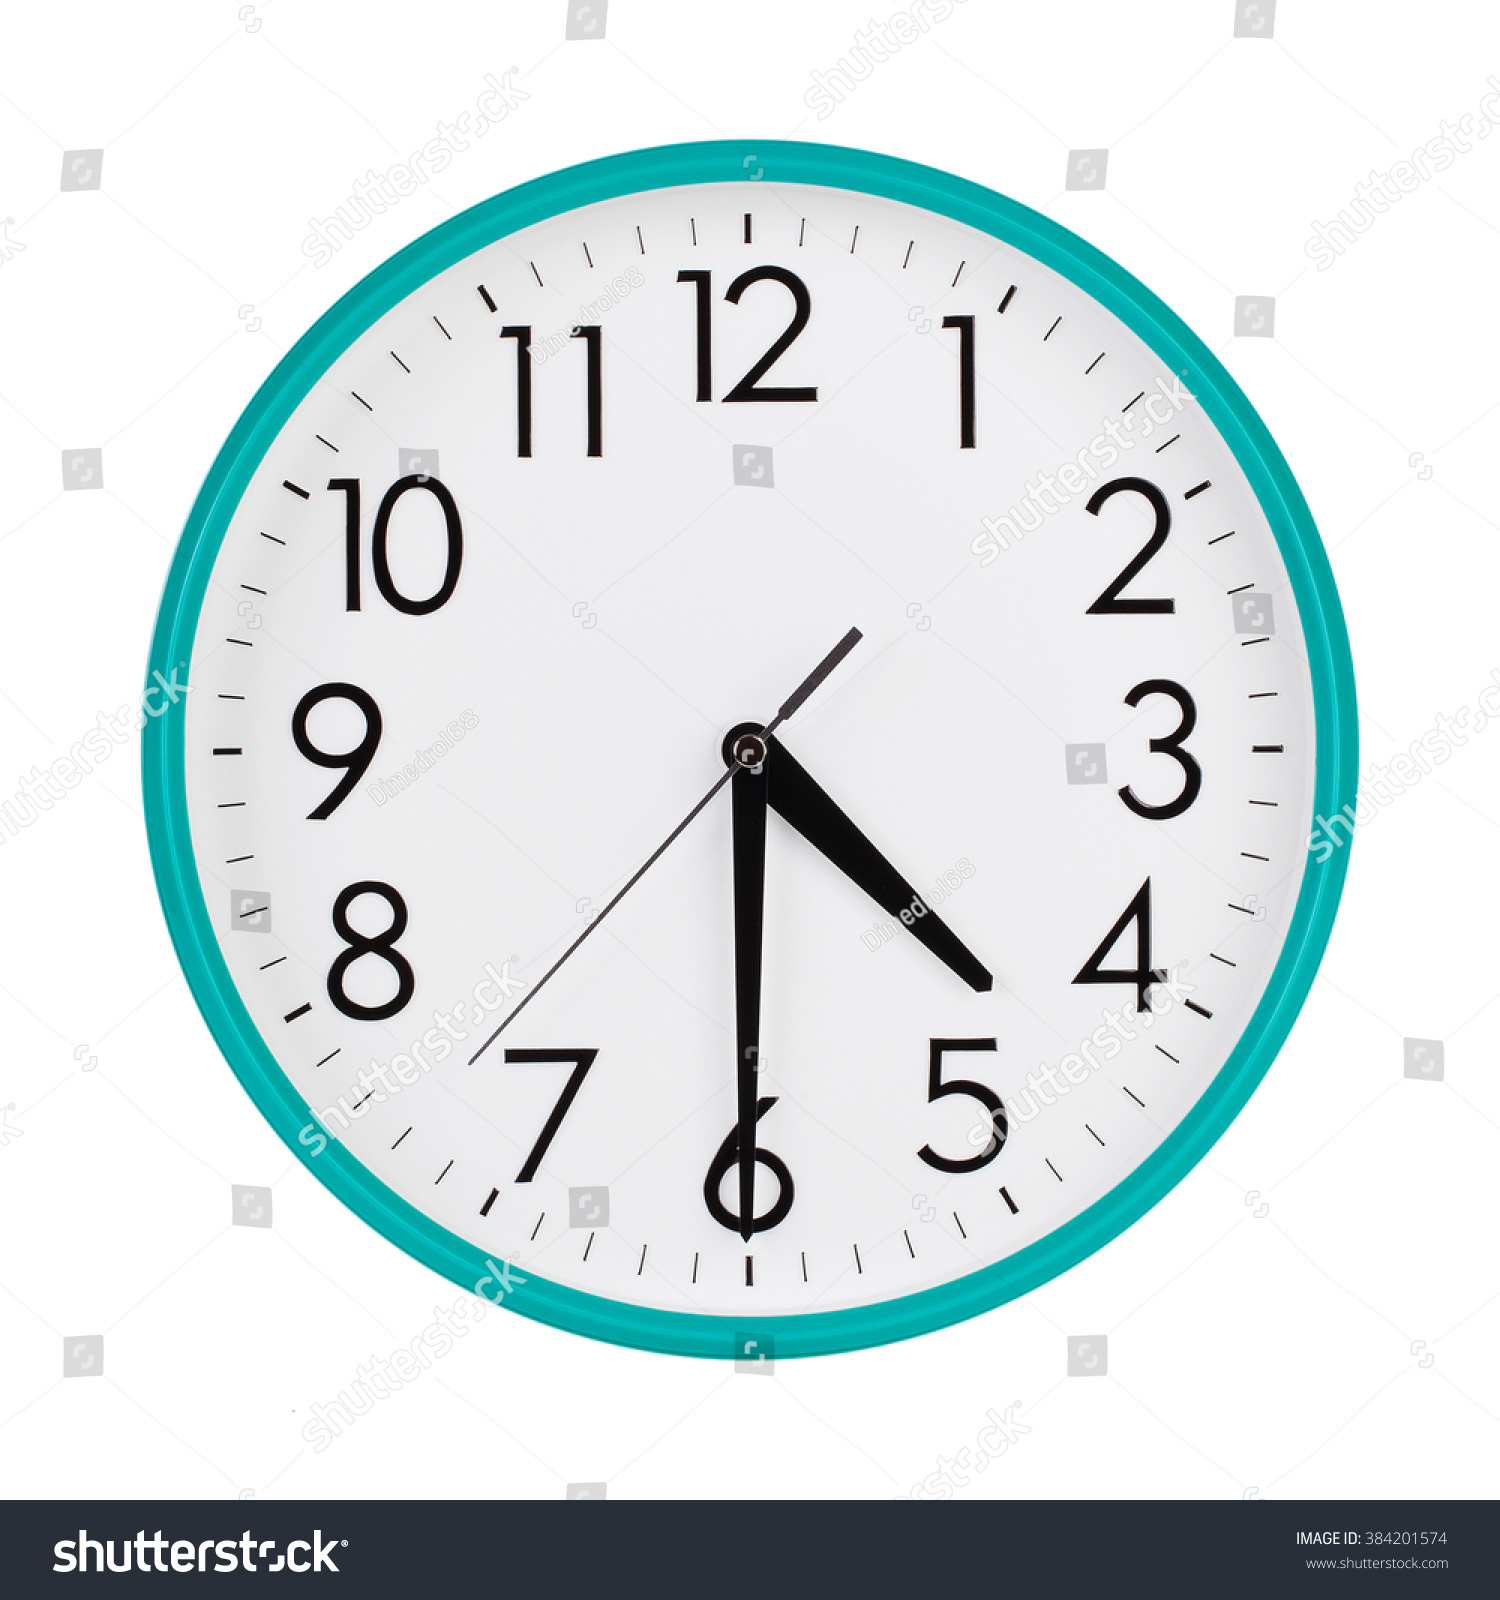 Half Past Four Oclock On Dial Stock Photo